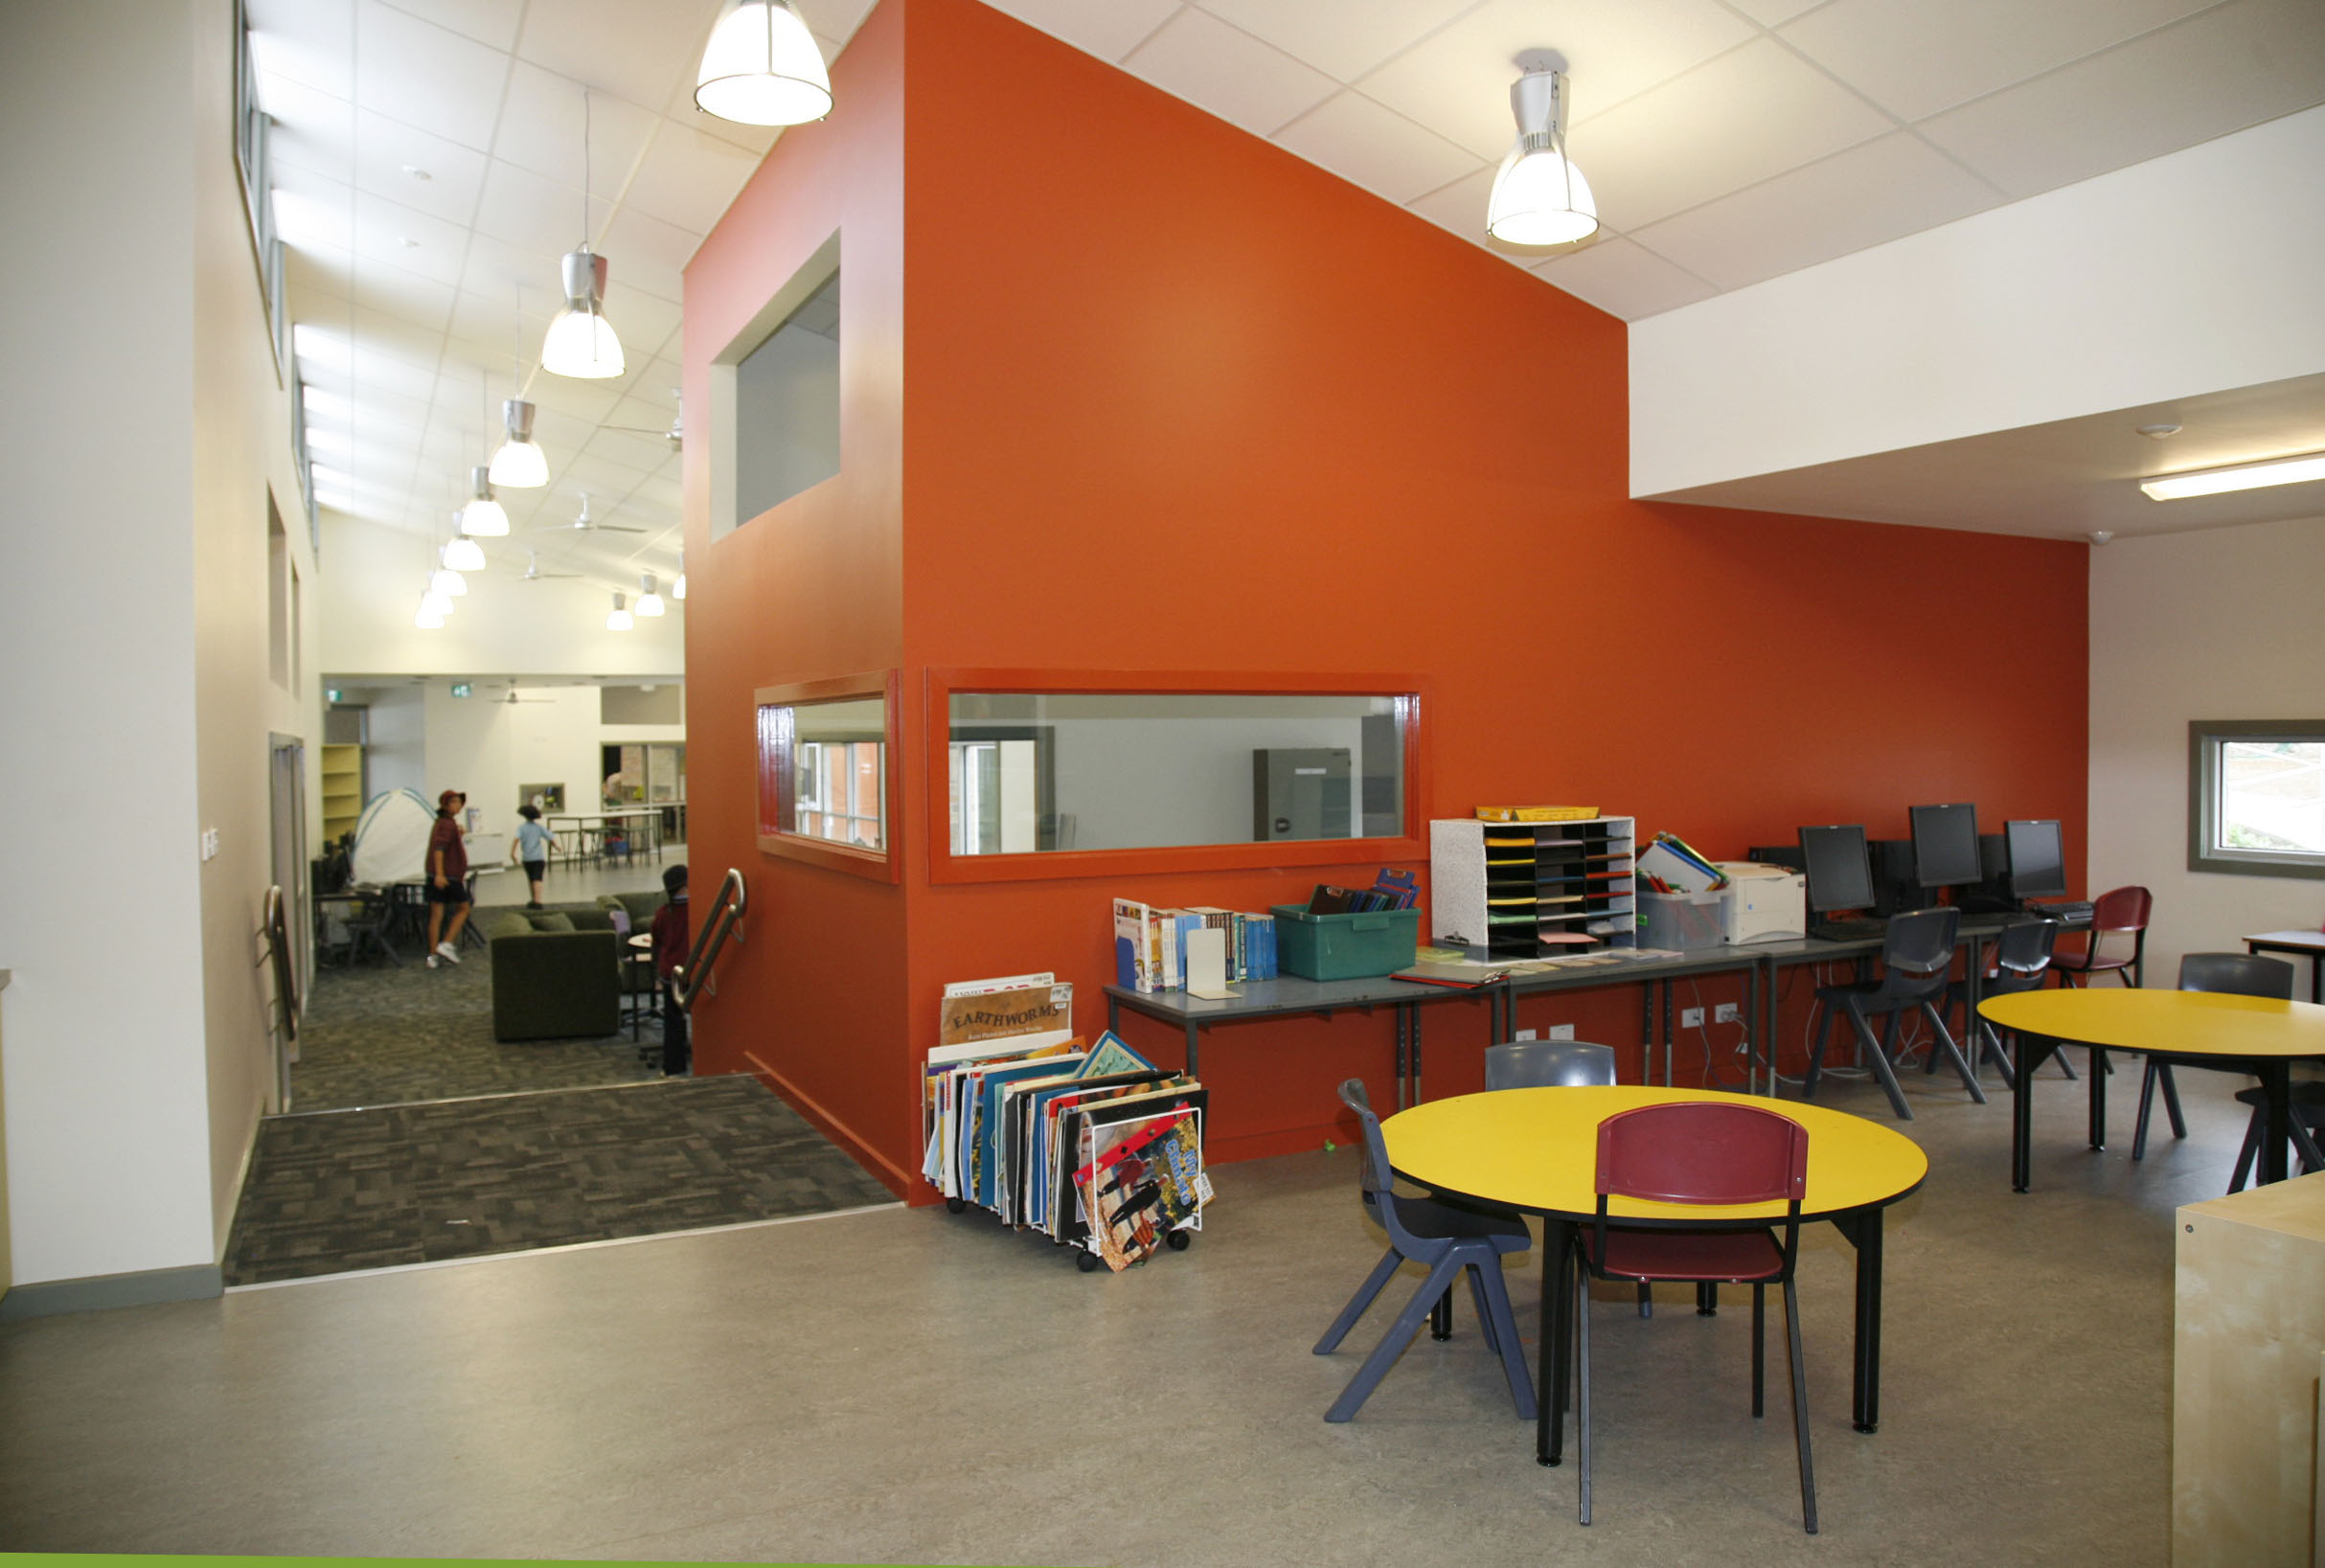 Home – Mount Evelyn Primary School – CERES Sustainability Hub